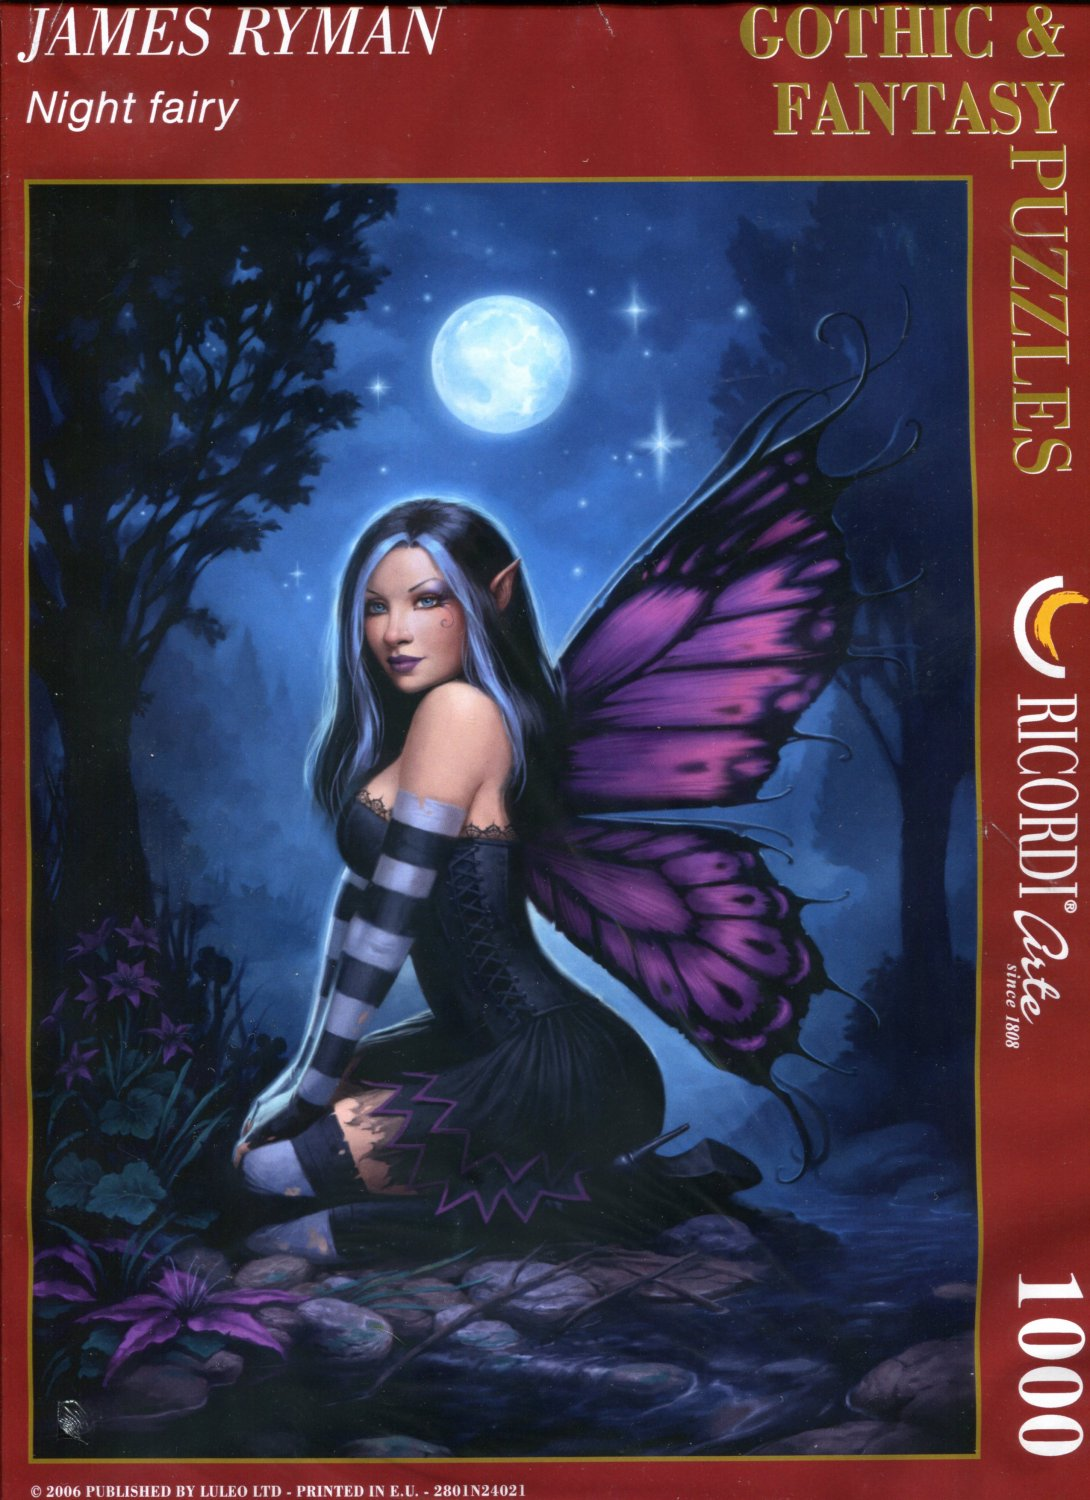 Ricordi James Ryman NIGHT FAIRY 1000 pc Jigsaw Puzzle